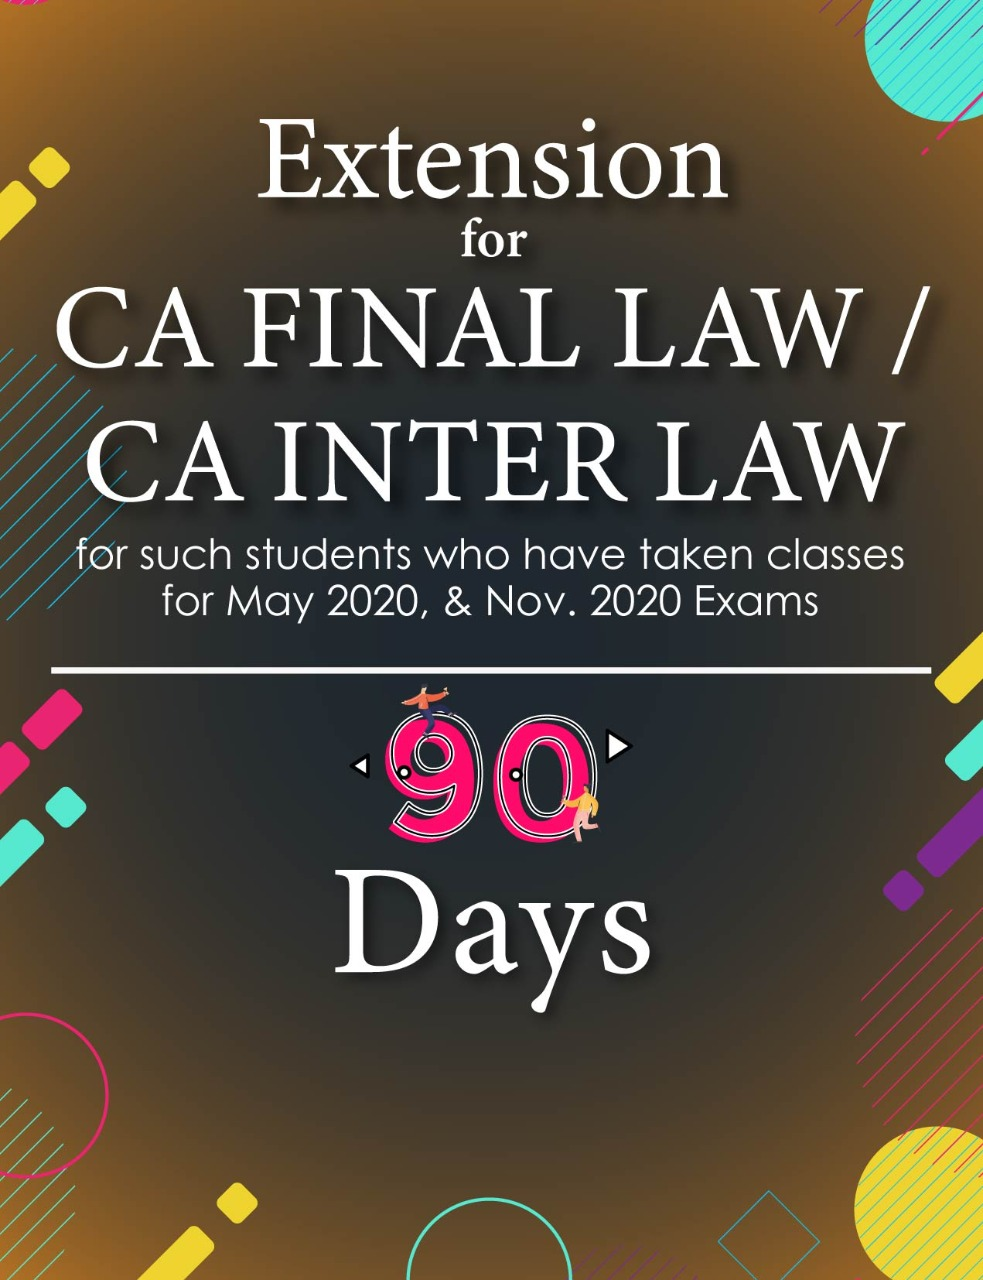 extension-of-ca-final-law-and-ca-inter-law-lectures-for-90-days